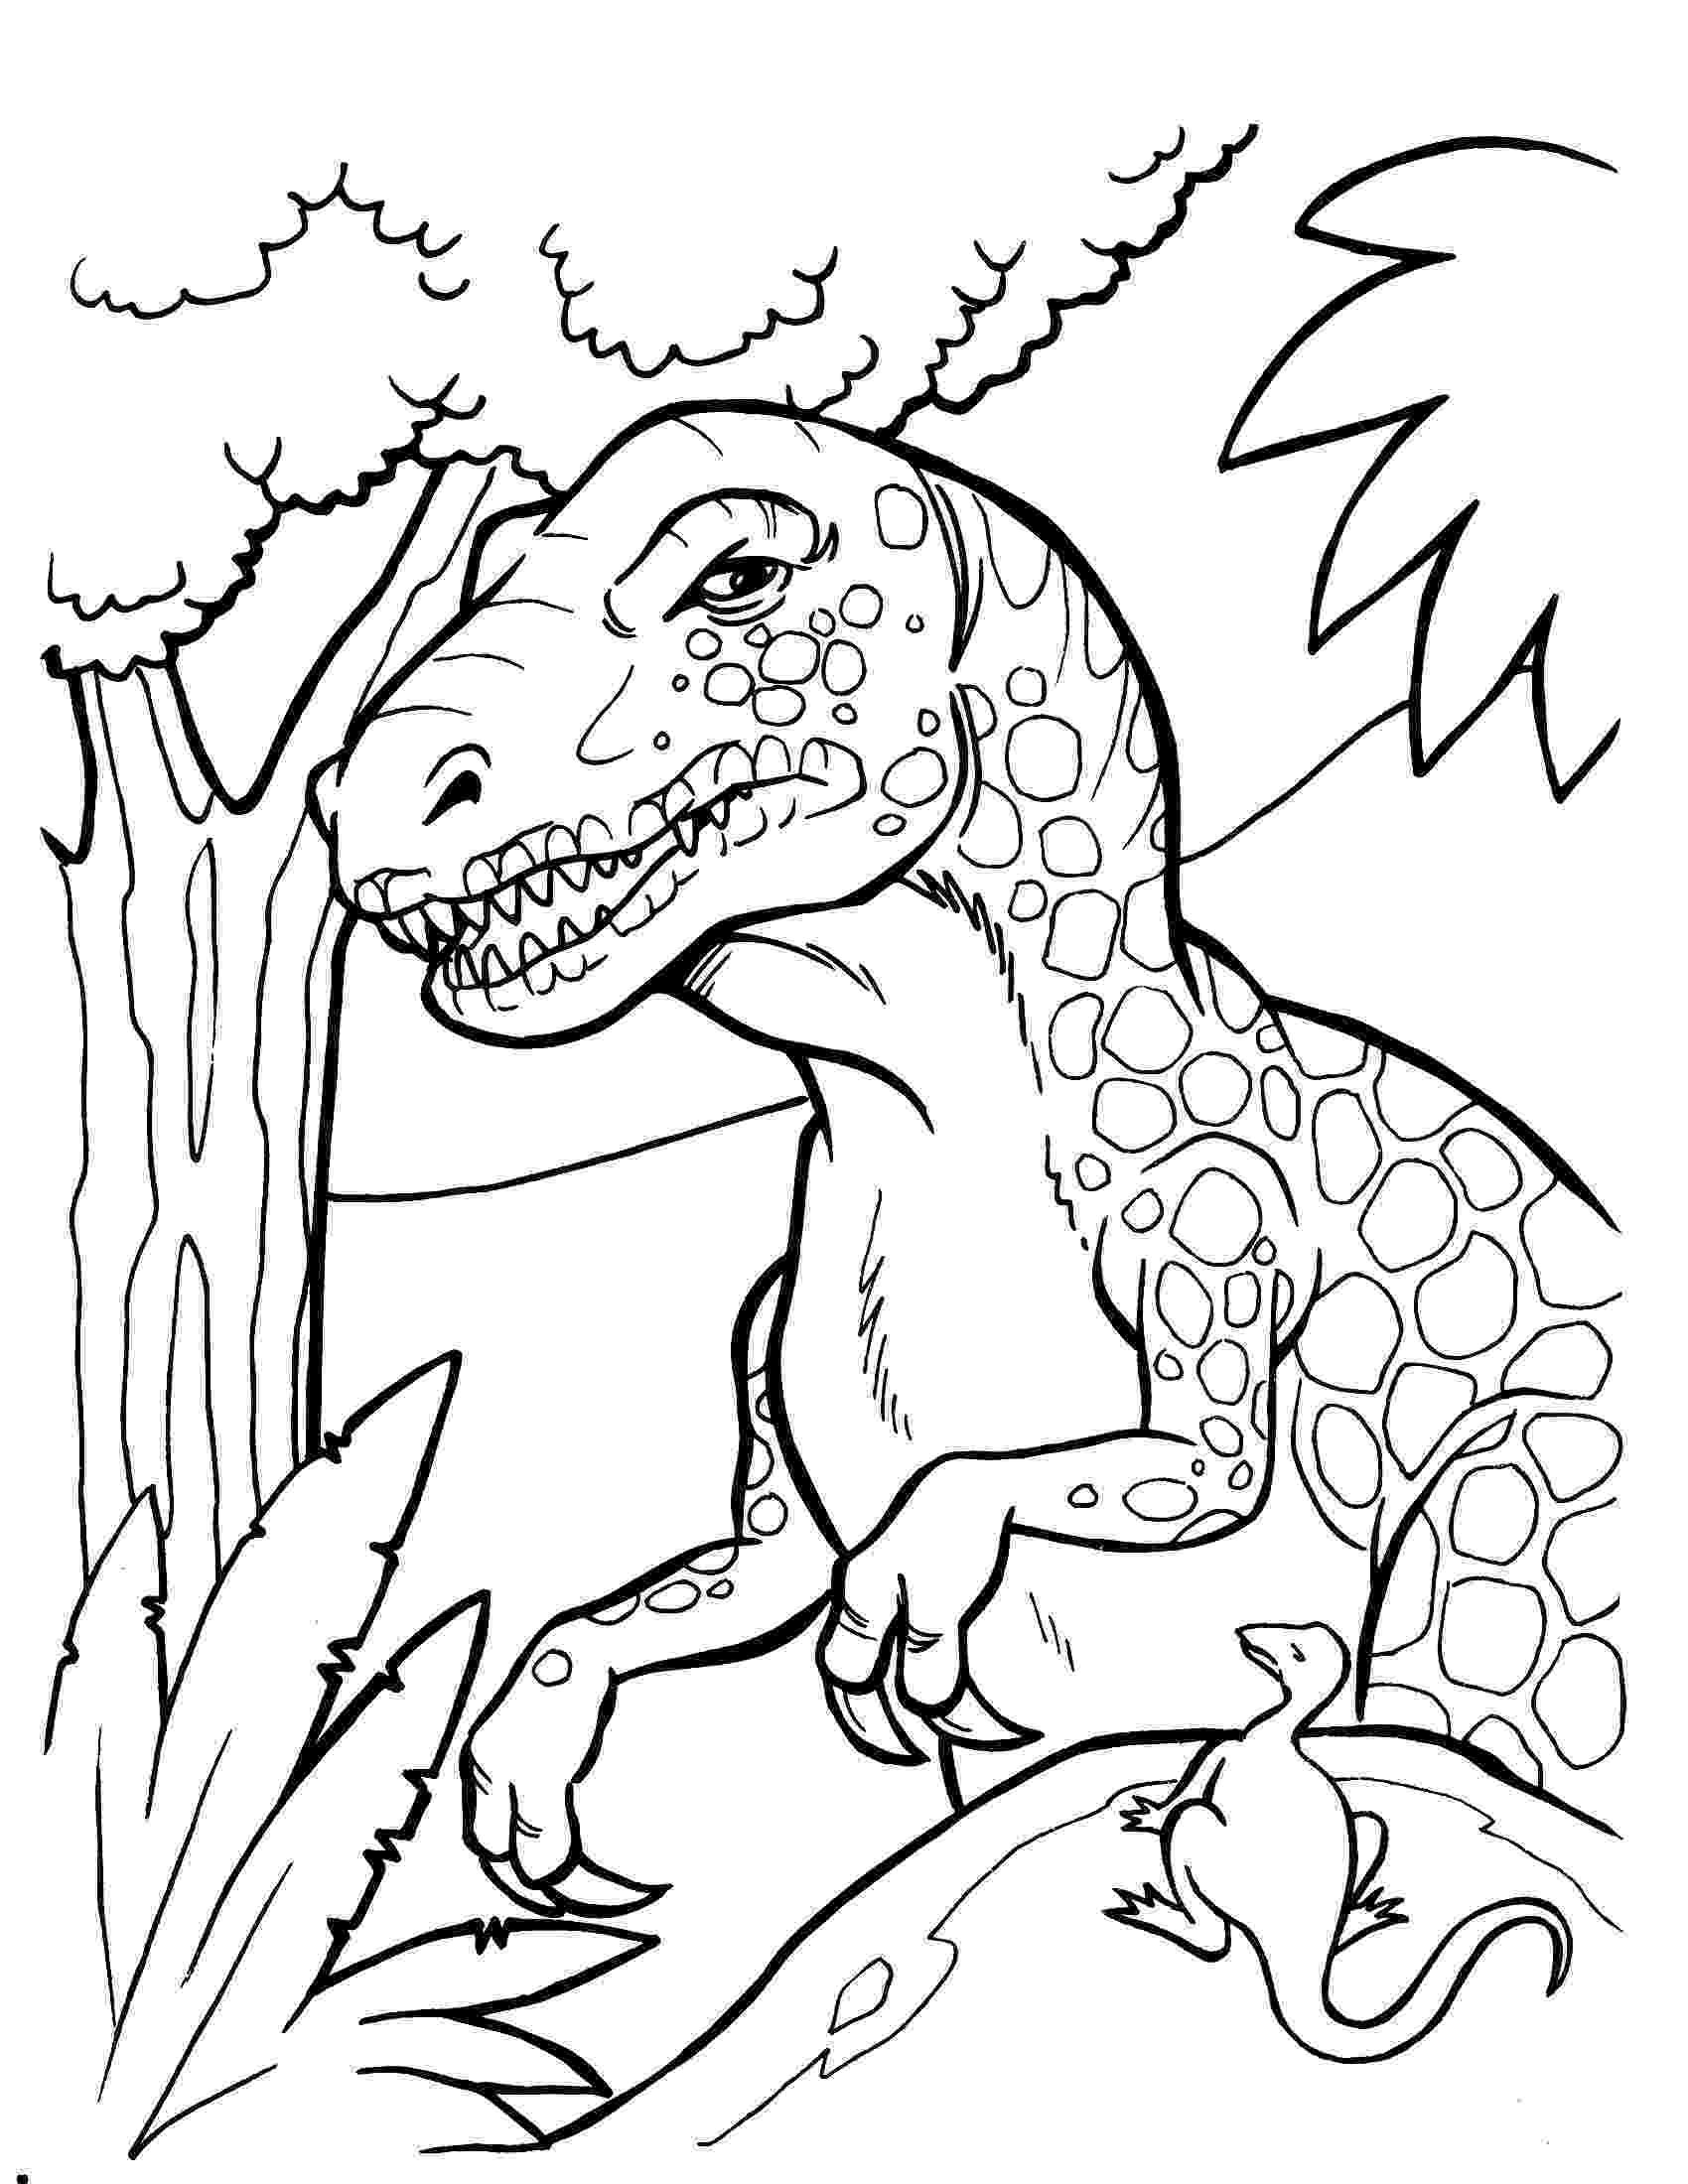 scary dinosaur coloring pages scary dinosaur coloring pages coloring pages to download coloring dinosaur scary pages